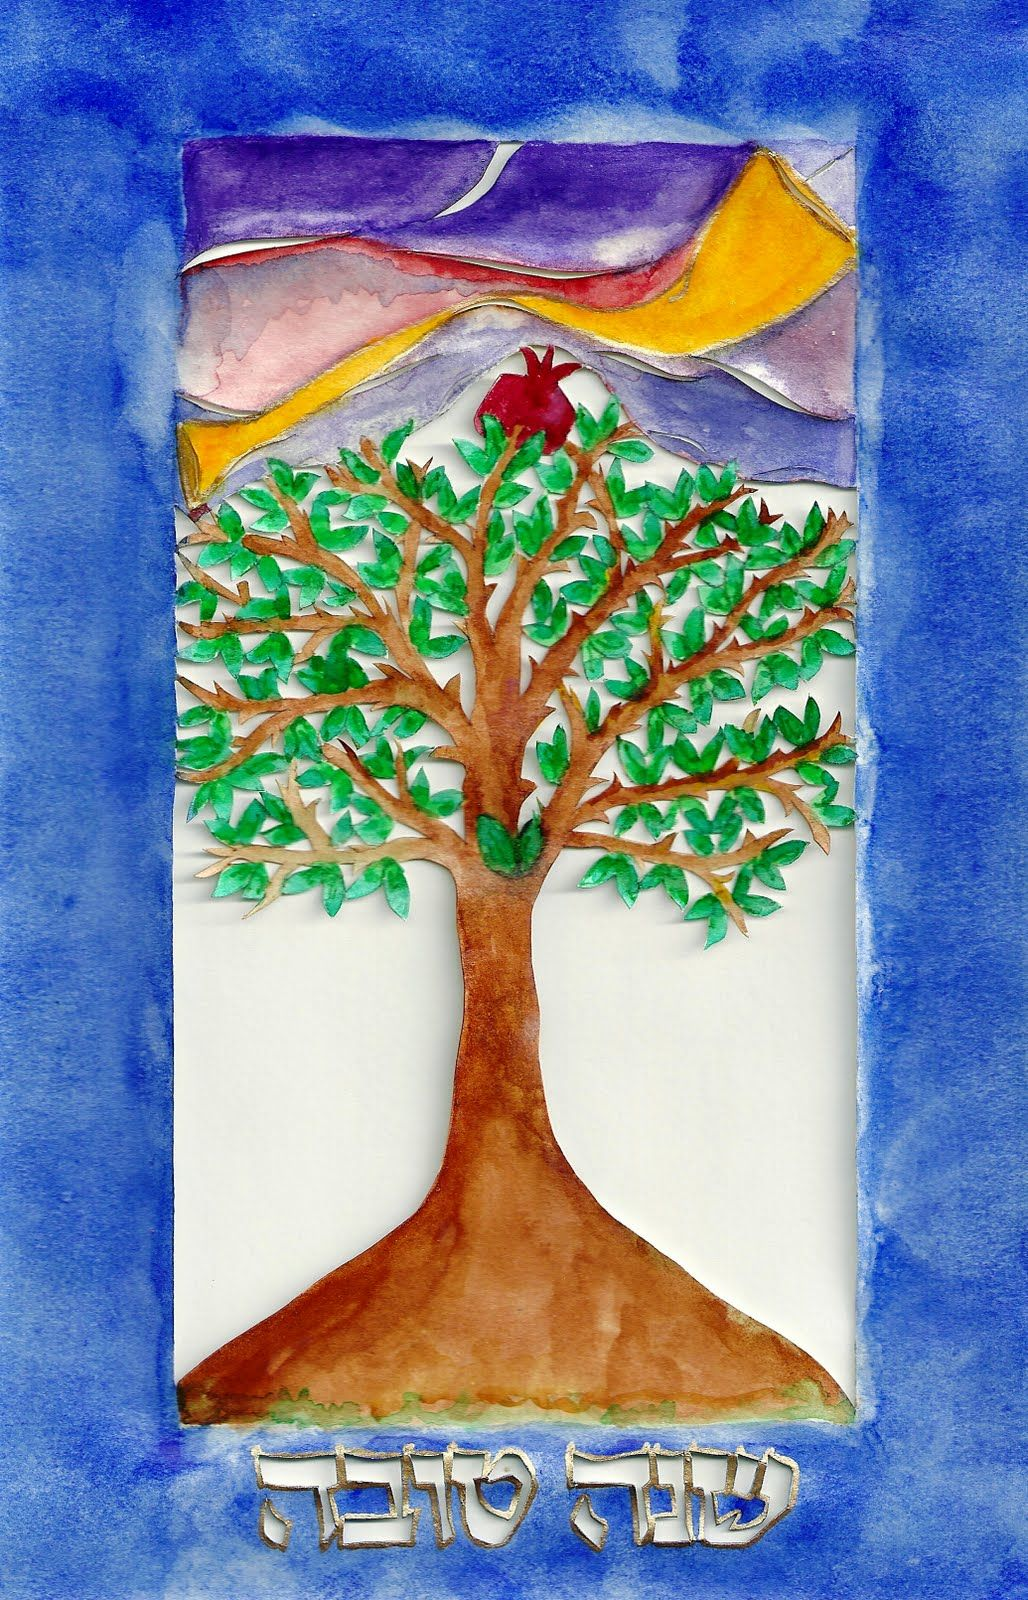 Download the latest and trending collection of happy rosh hashanah download the latest and trending collection of happy rosh hashanah greetings images and many more things kristyandbryce Choice Image